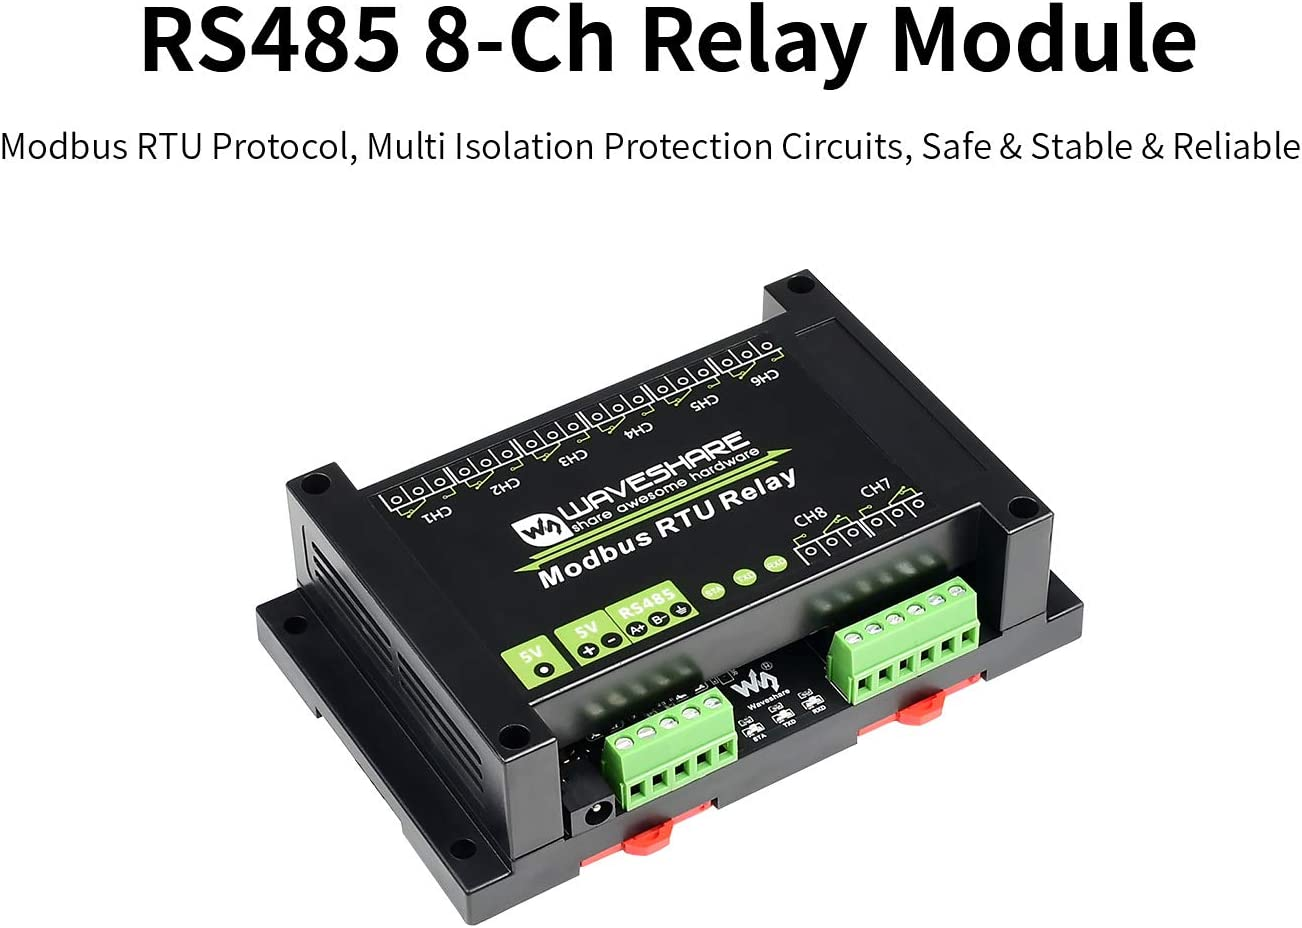 Waveshare Industrial Modbus RTU 8-ch Channel Relay Module with RS485 Interface Multi Isolation Protection Circuits with ABS Enclosure Up to 10A Contact Rating